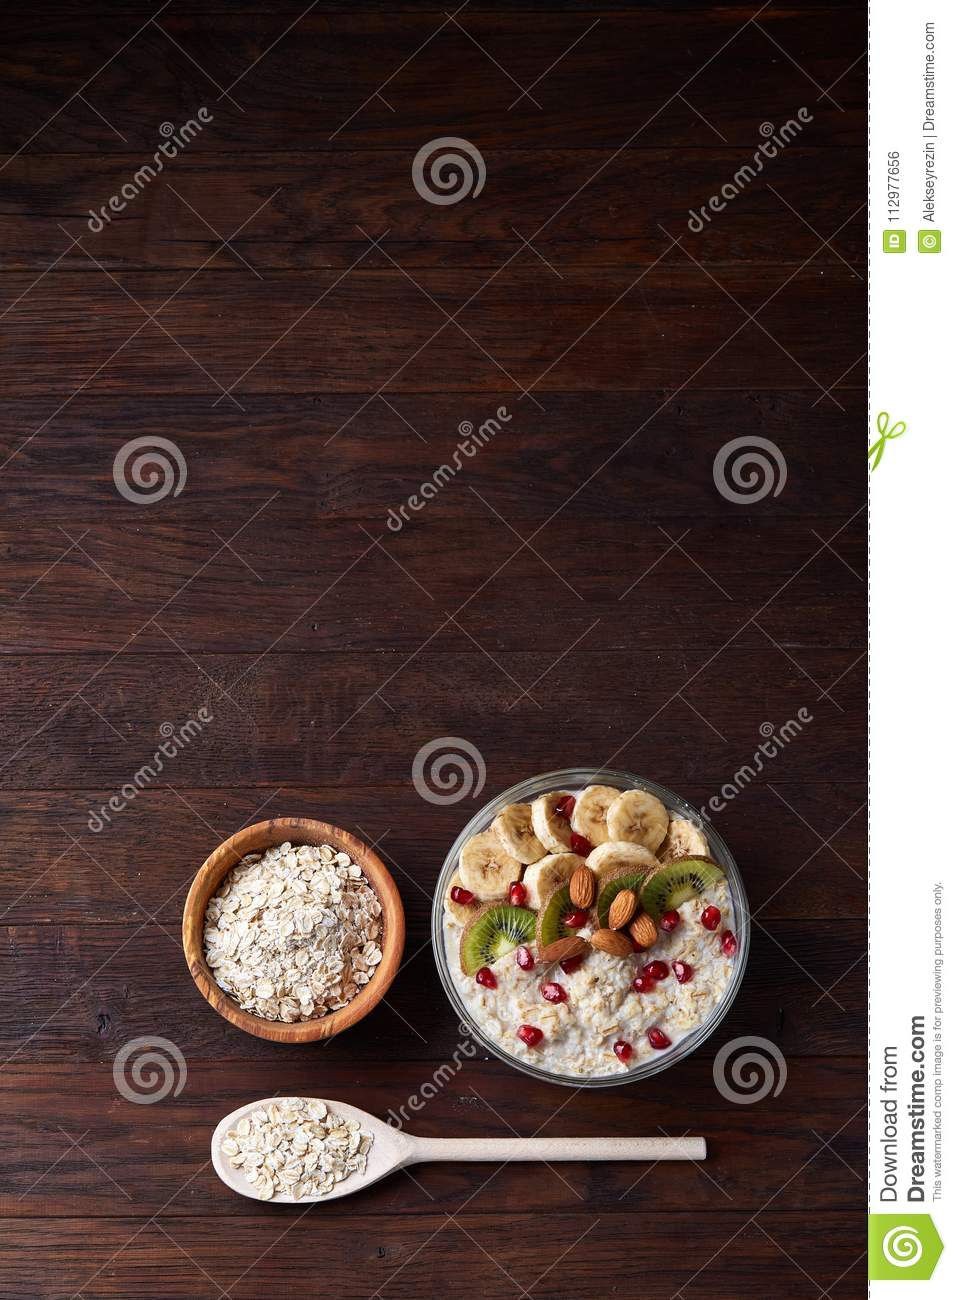 Bowl with oatmeal flakes served with fruits on wooden tray over rustic background, flat lay, selective focus